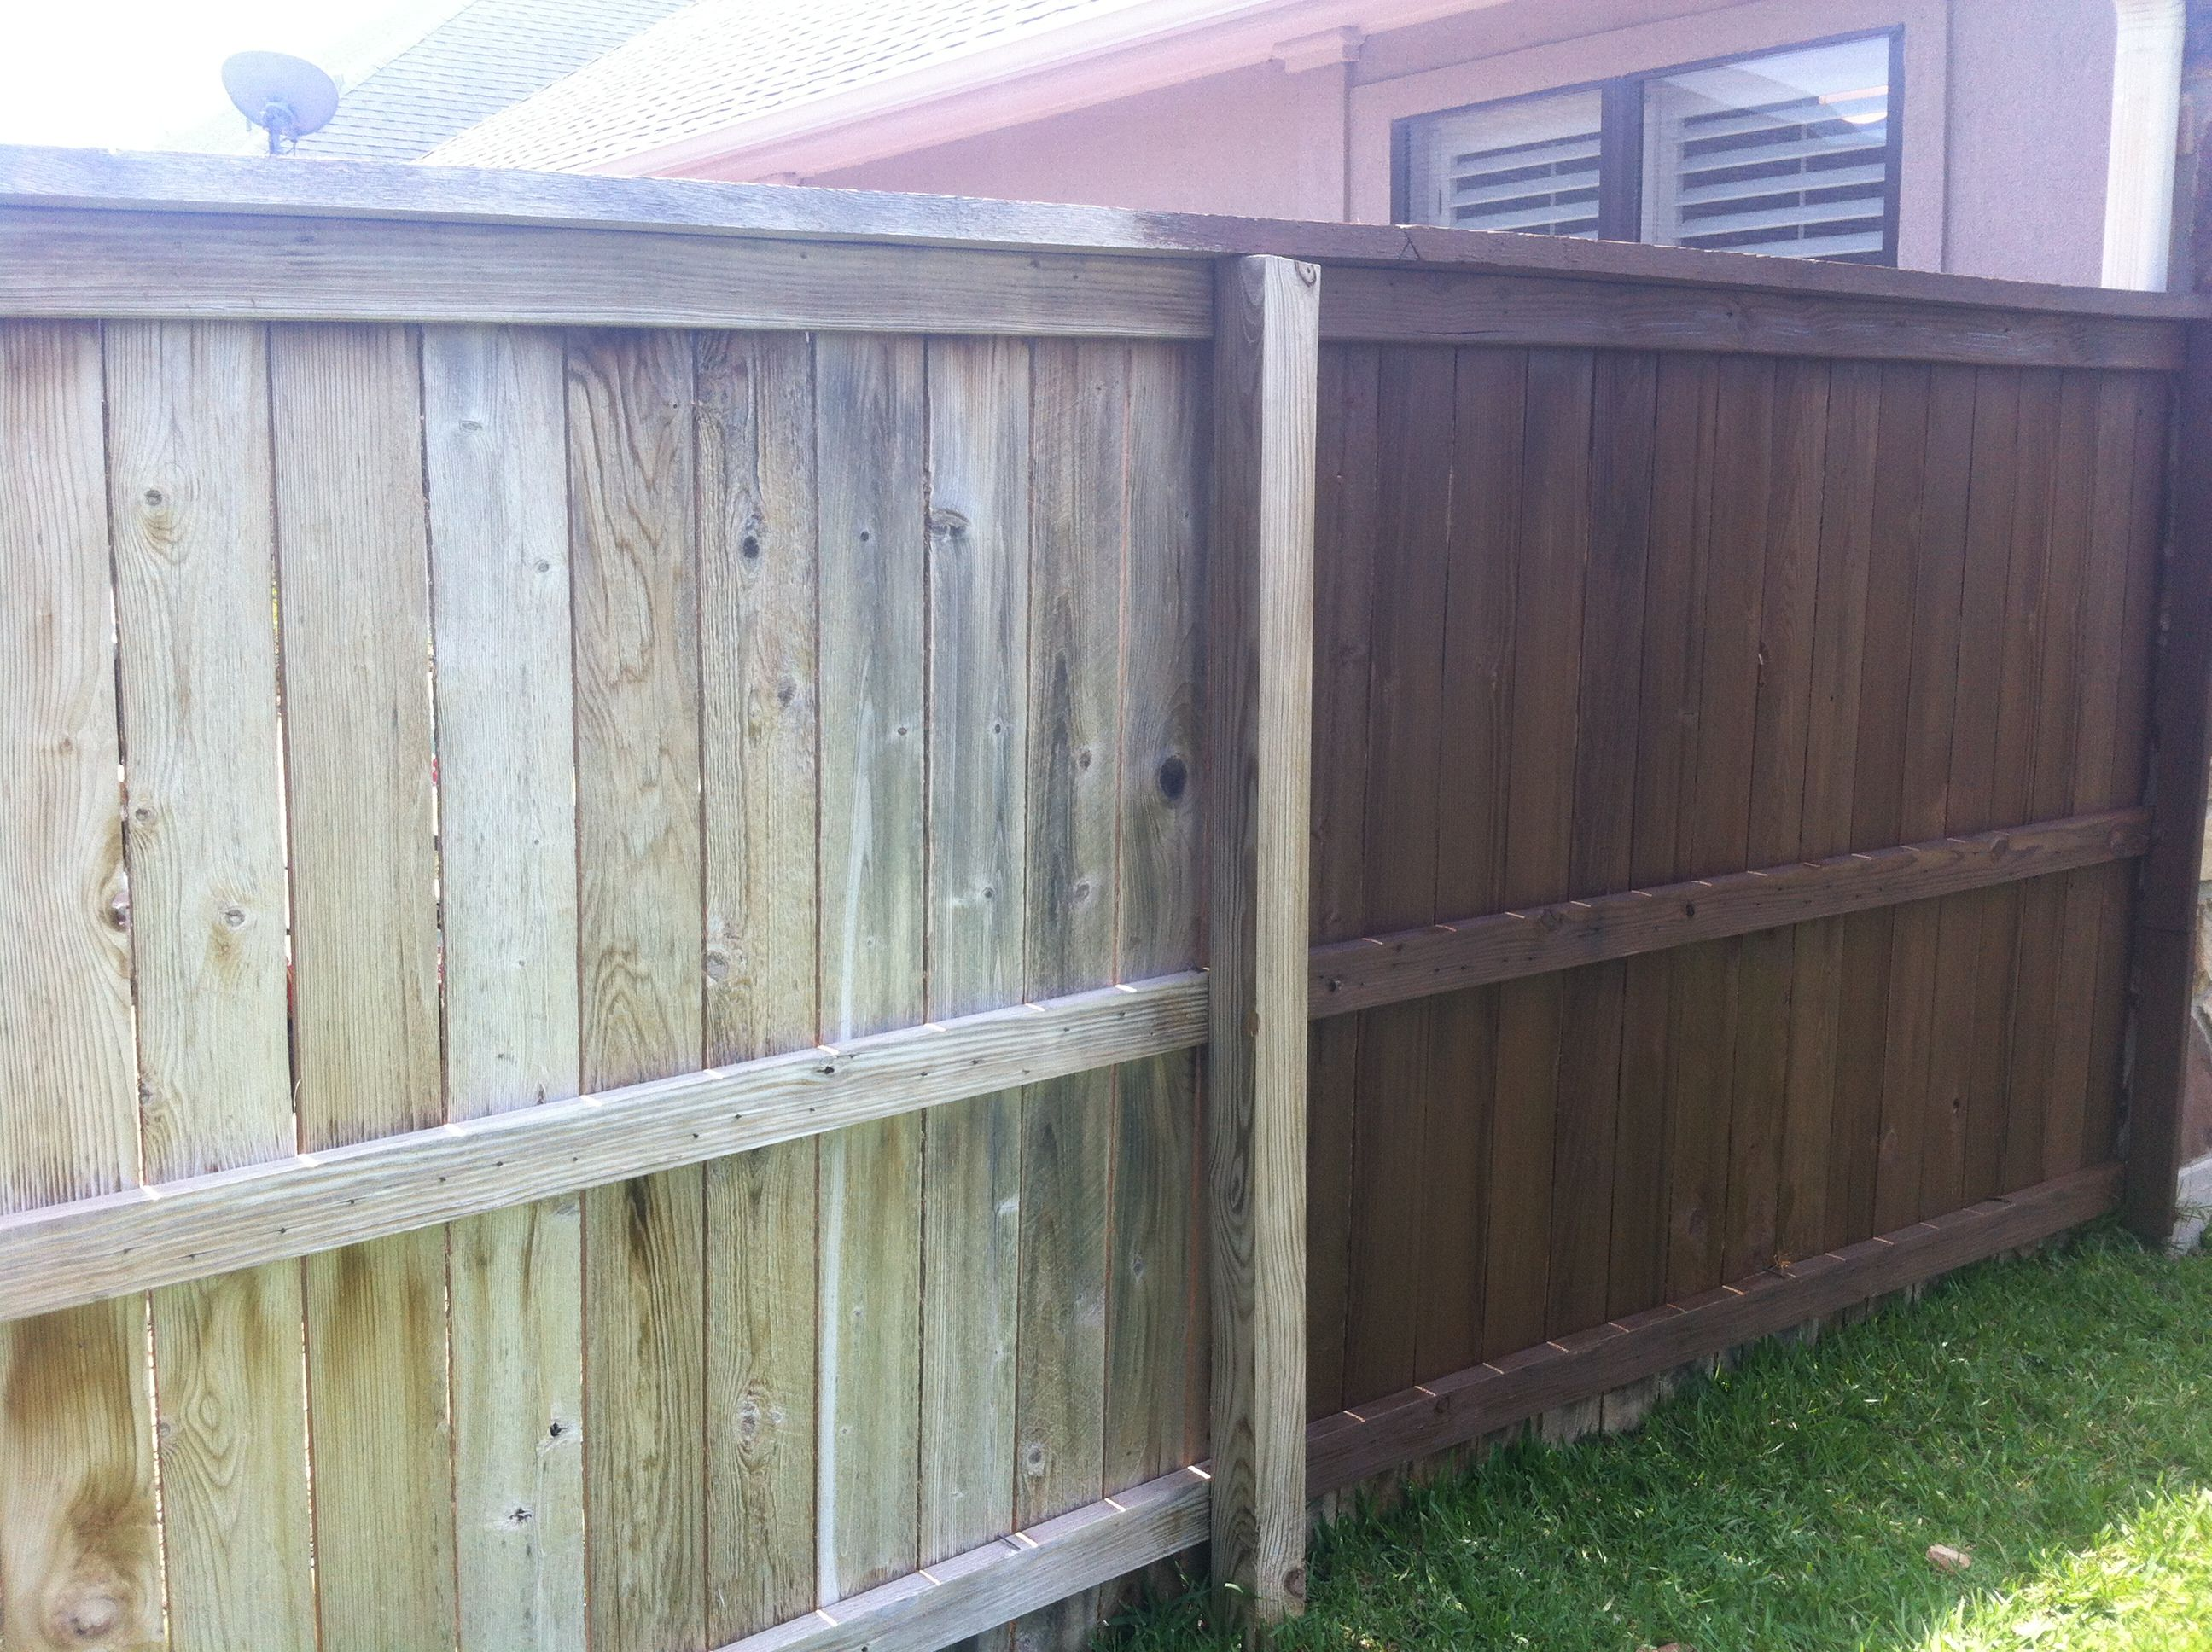 Staining A Wood Fence With Sprayer Label Wood Stain Staining Wood Fence Wooden Fence Panels Metal Fence Panels